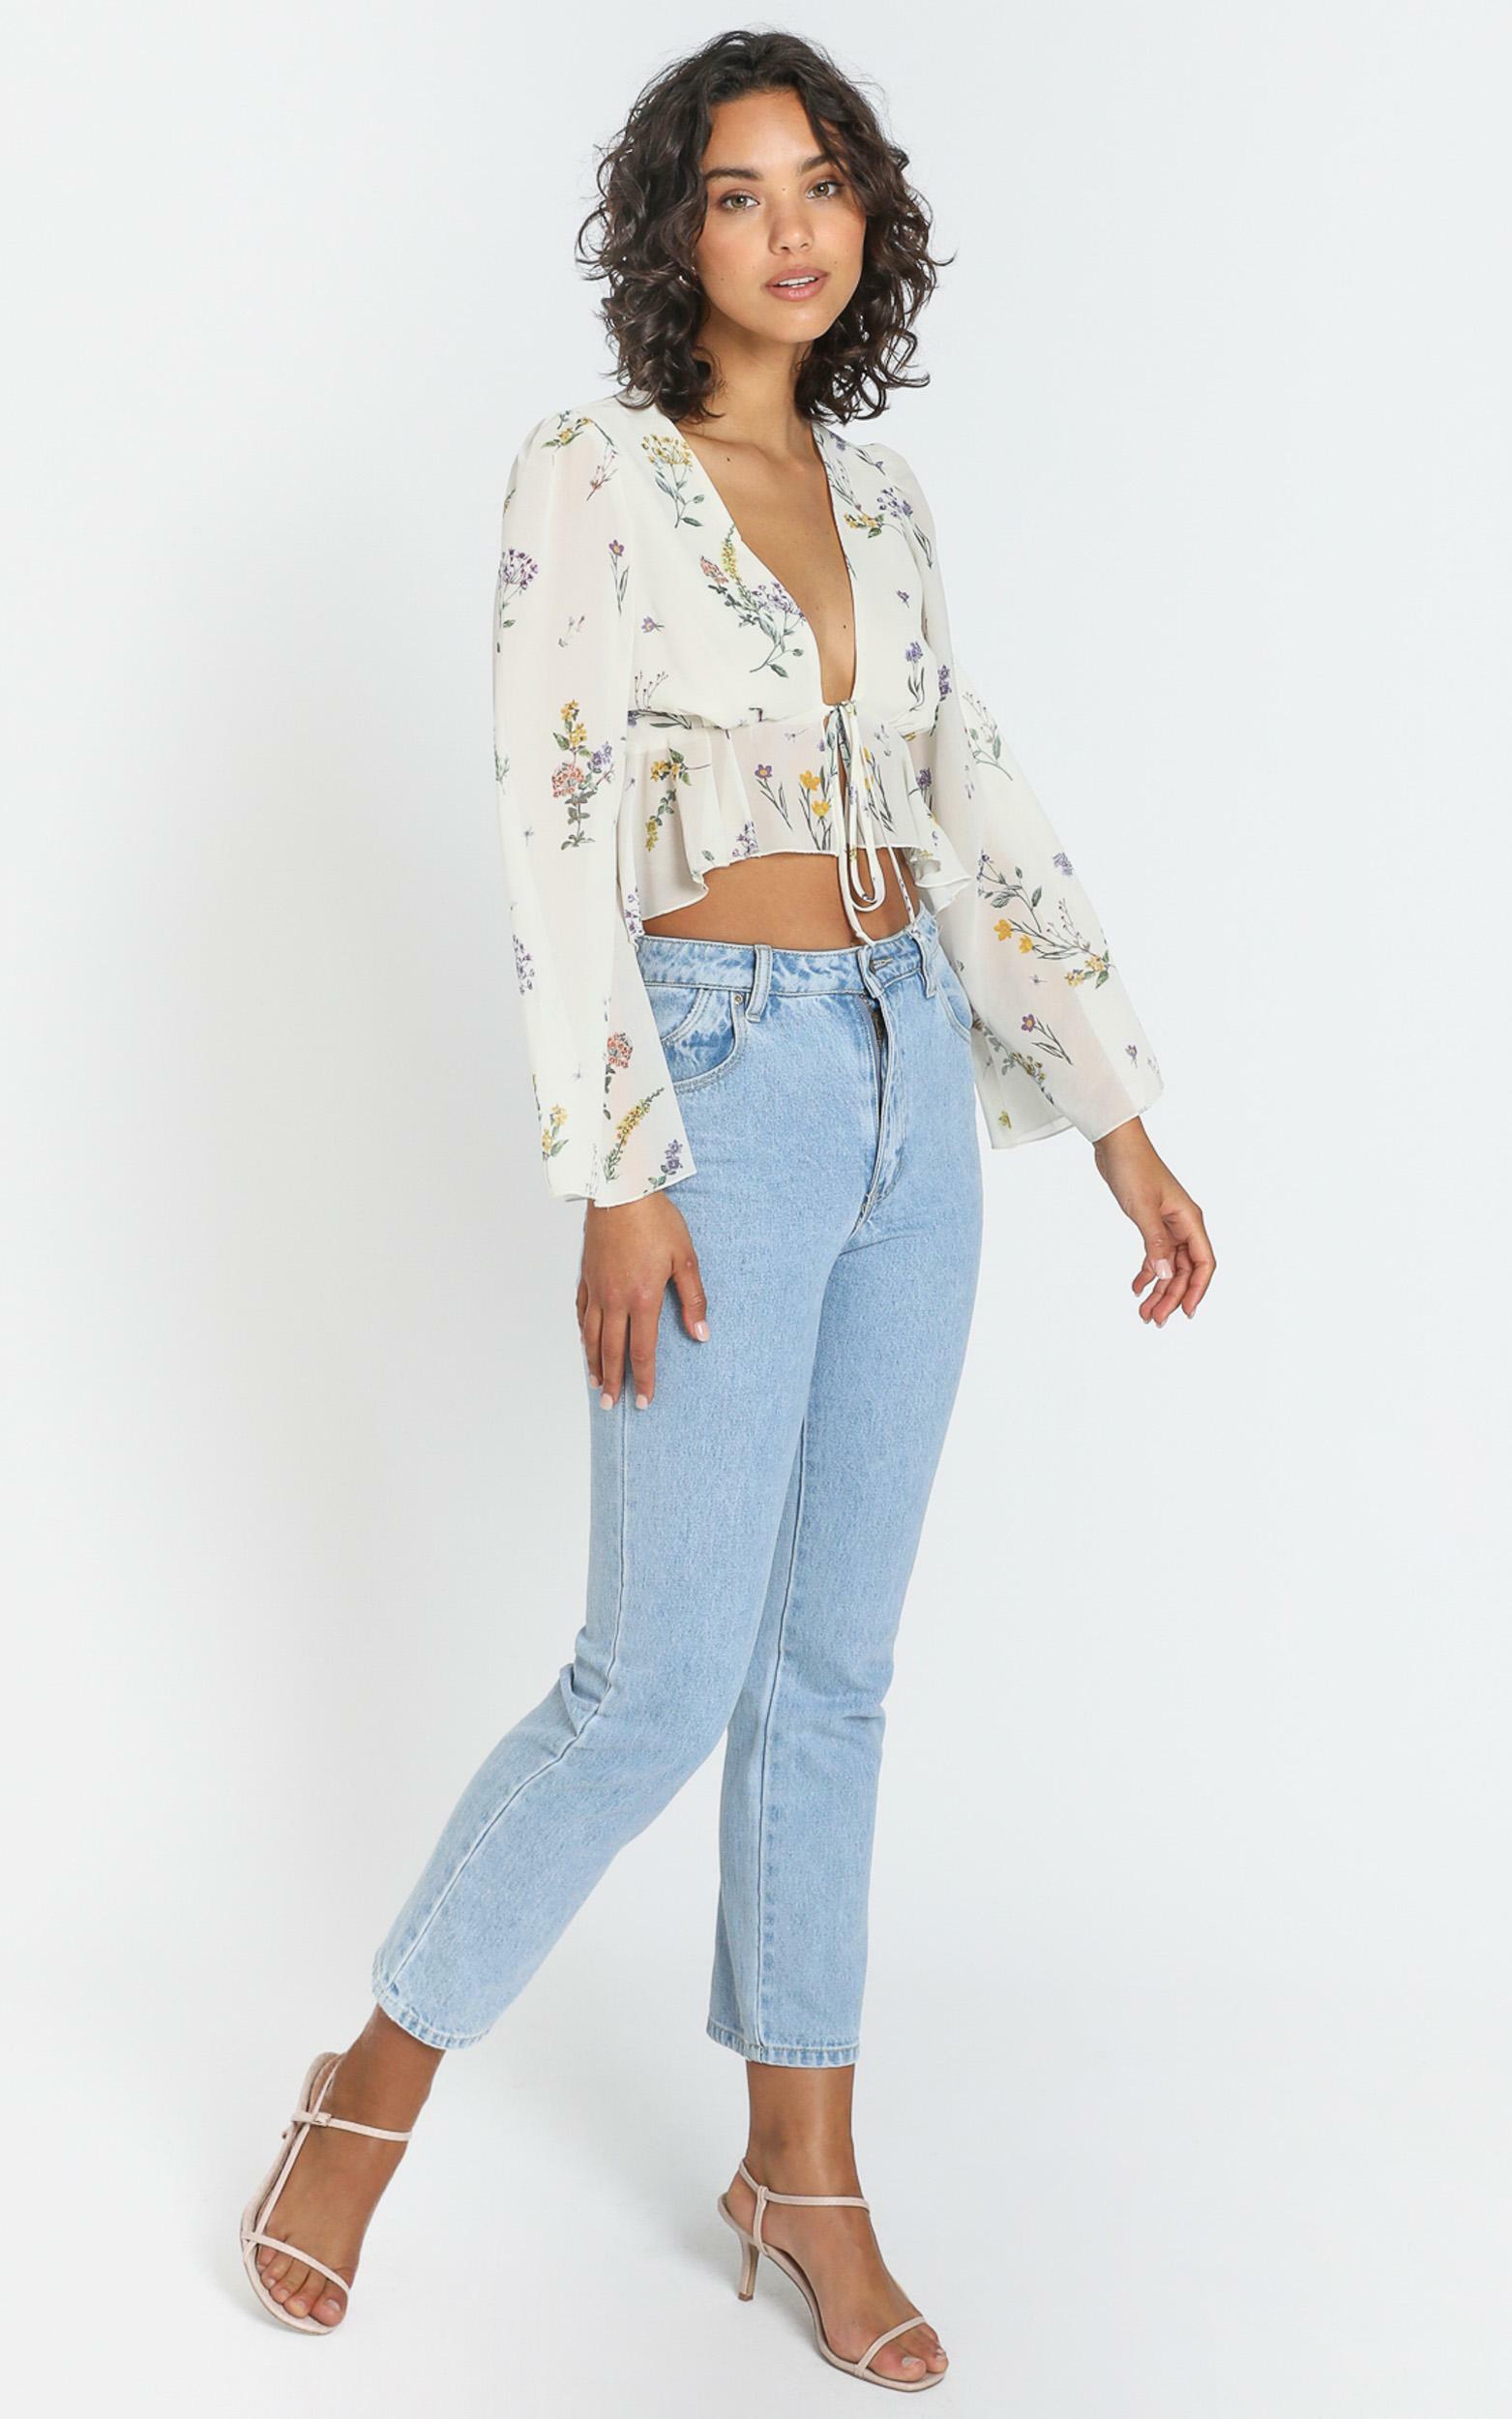 Dance It Out Top in botanical floral - 4 (XXS), White, hi-res image number null